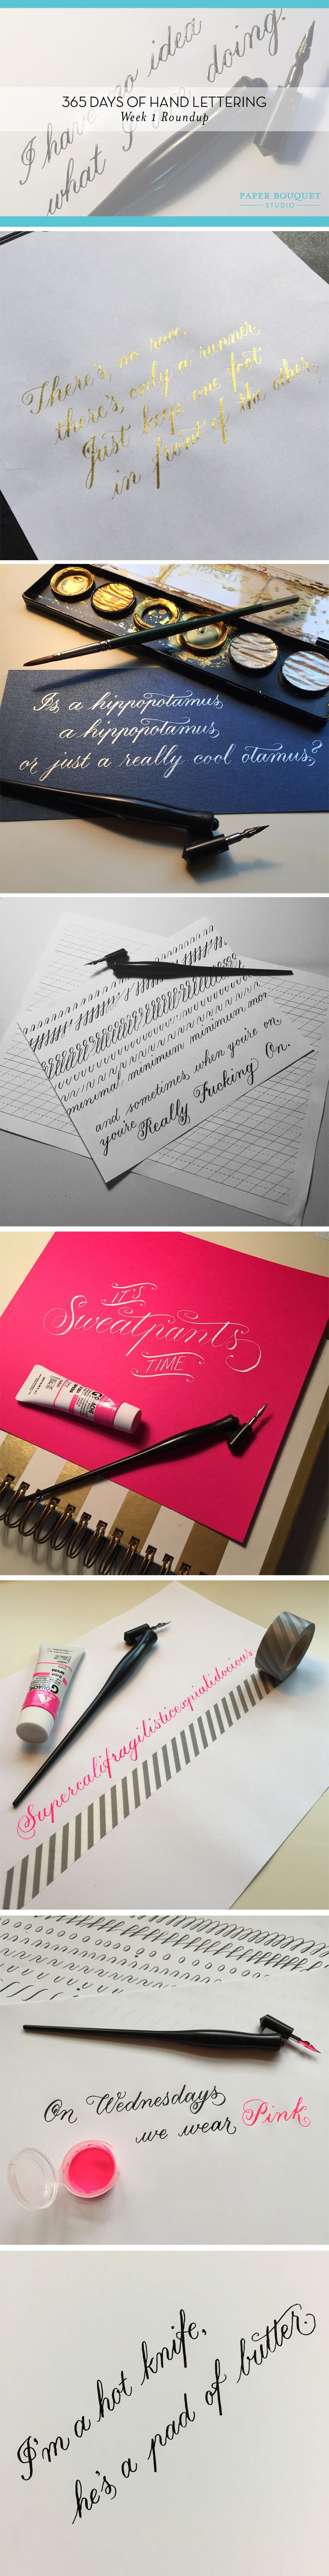 Amazing Samples of Self-Taught Calligraphy Hand Lettering | Paper Bouquet Studio